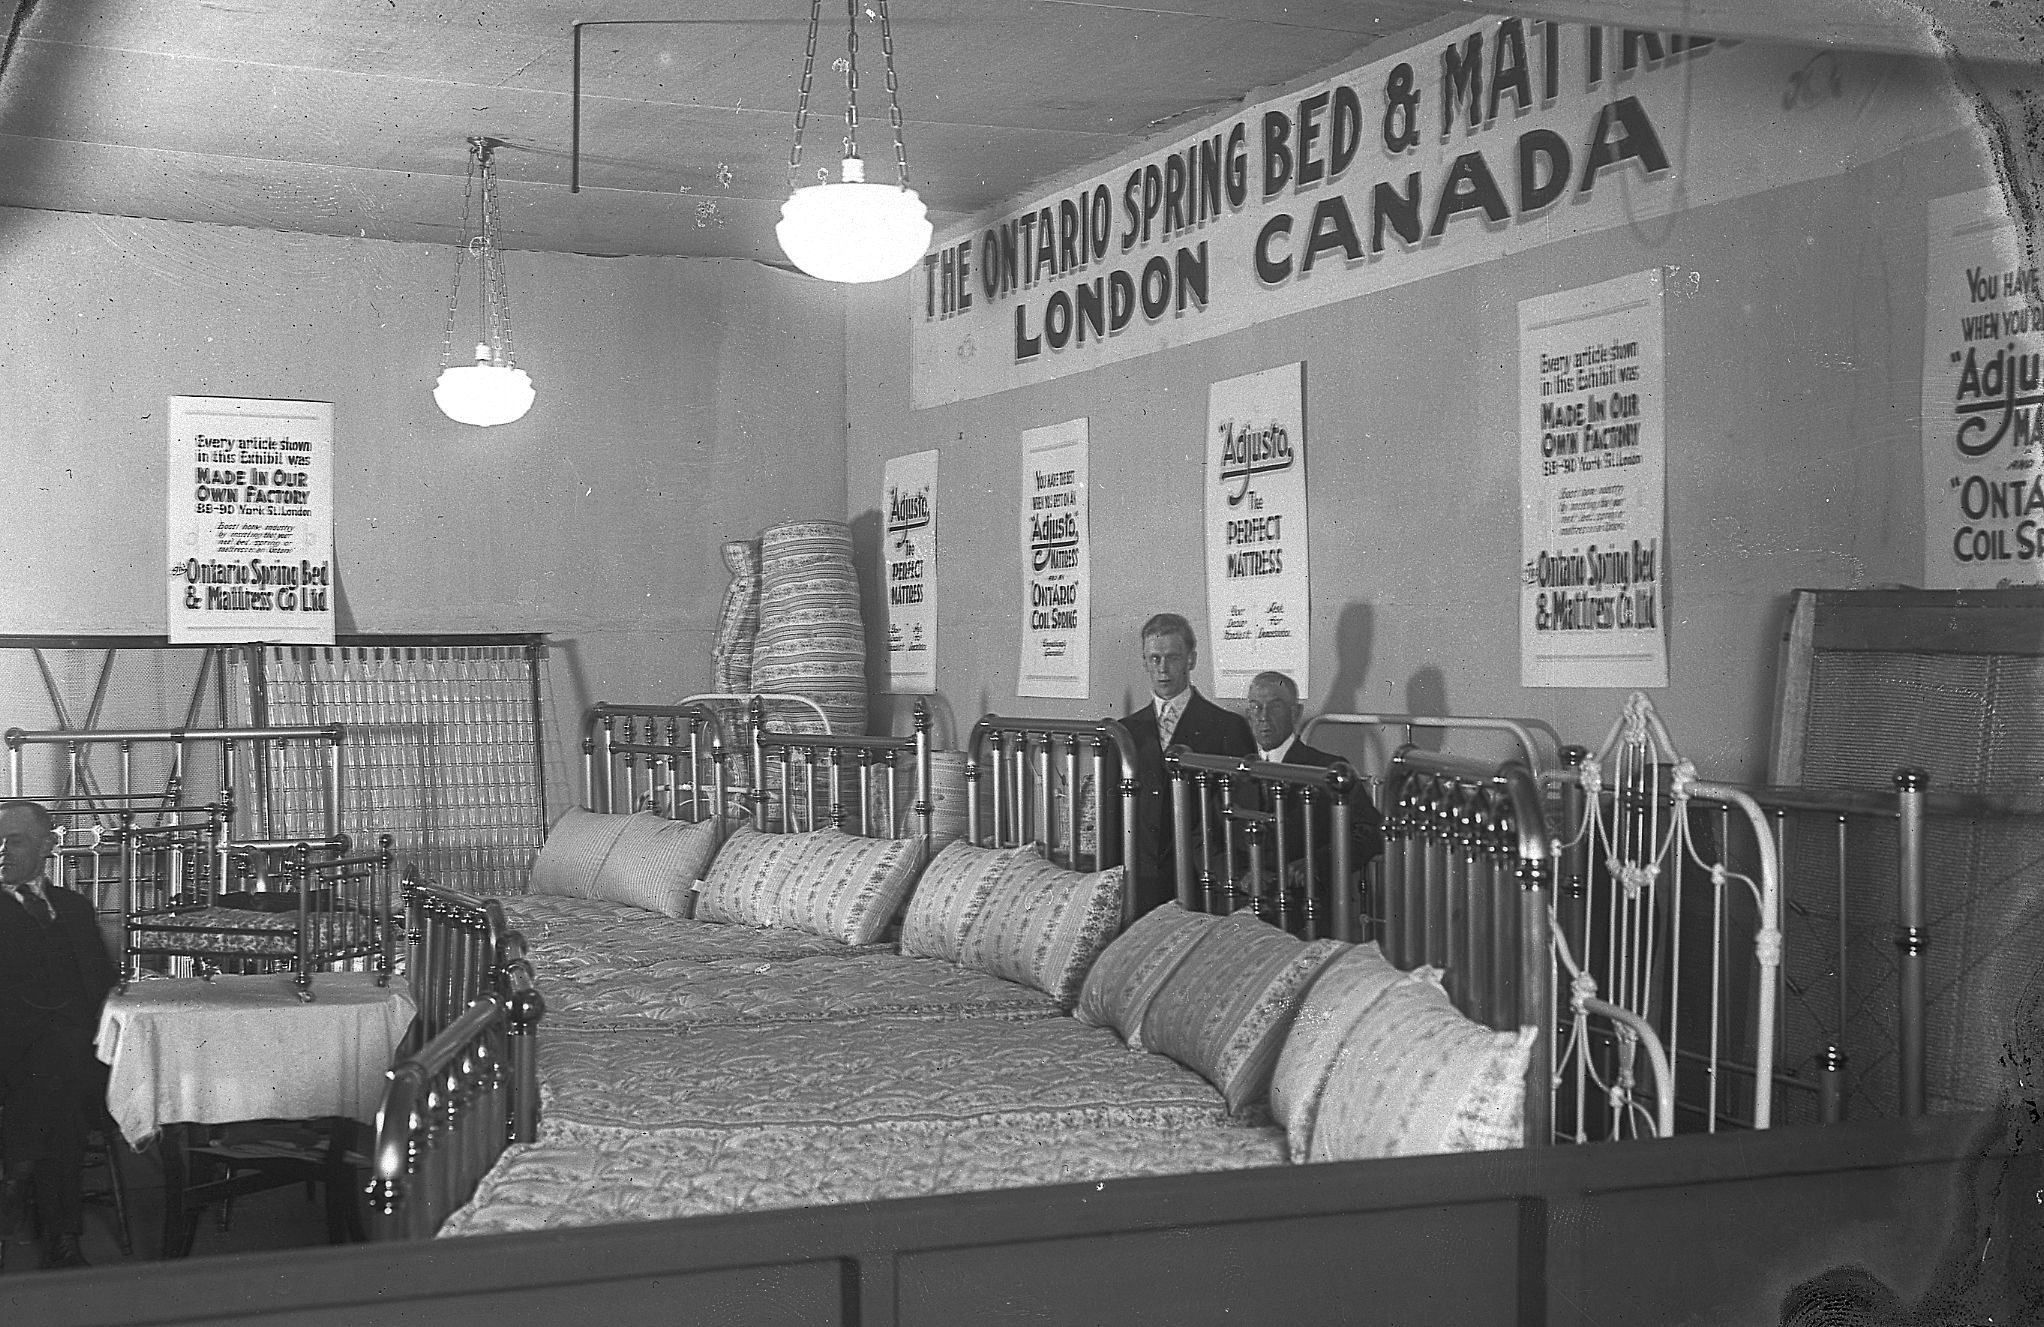 ontario spring bed mattress booth c 1922 western fair vintage